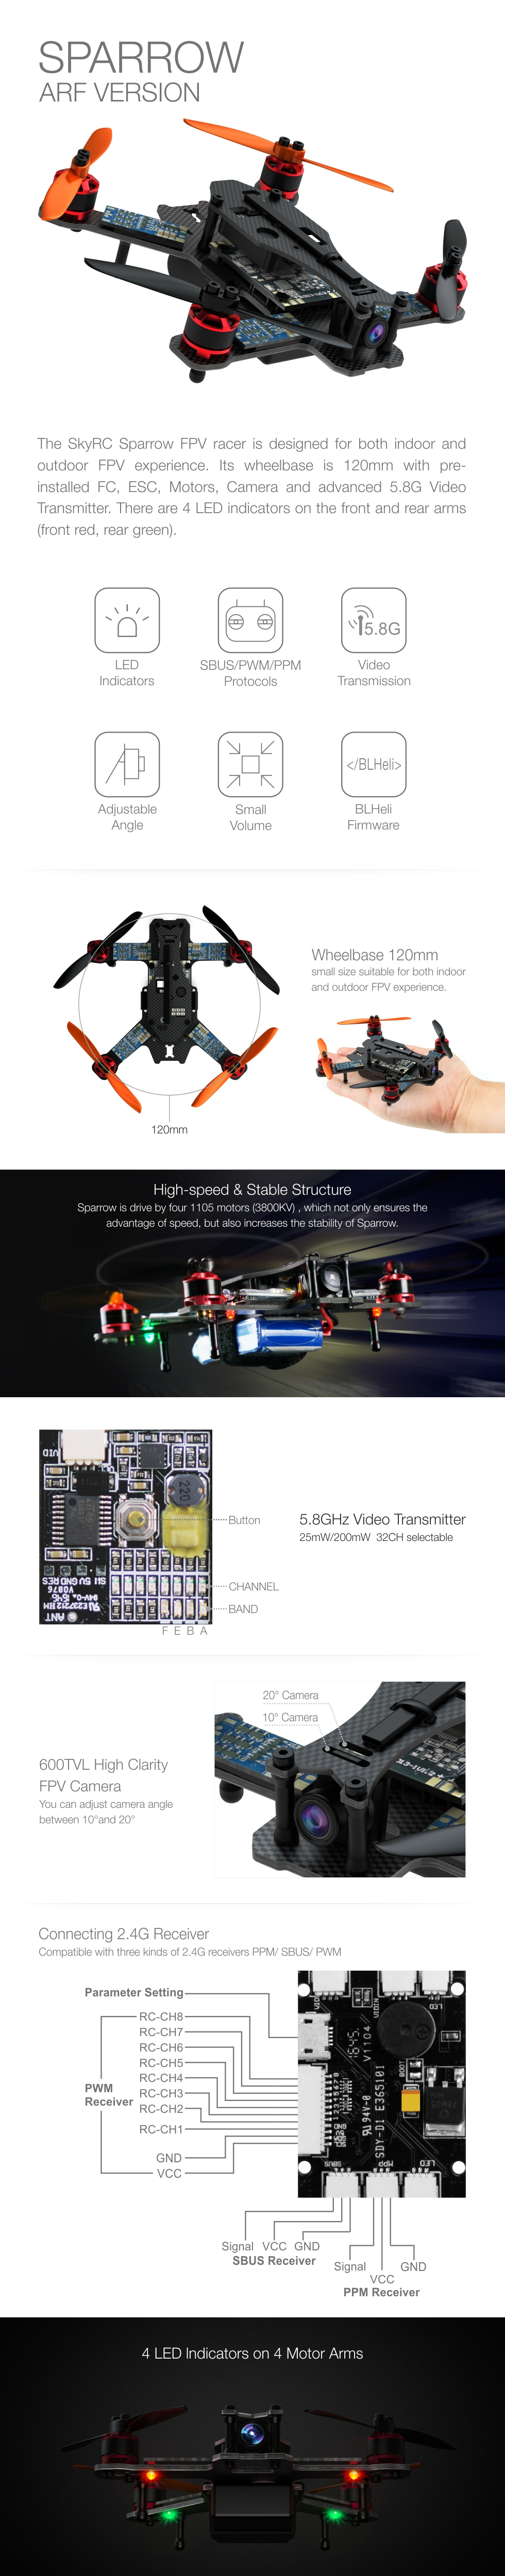 Sparrow ARF FPV Racing Drone Features